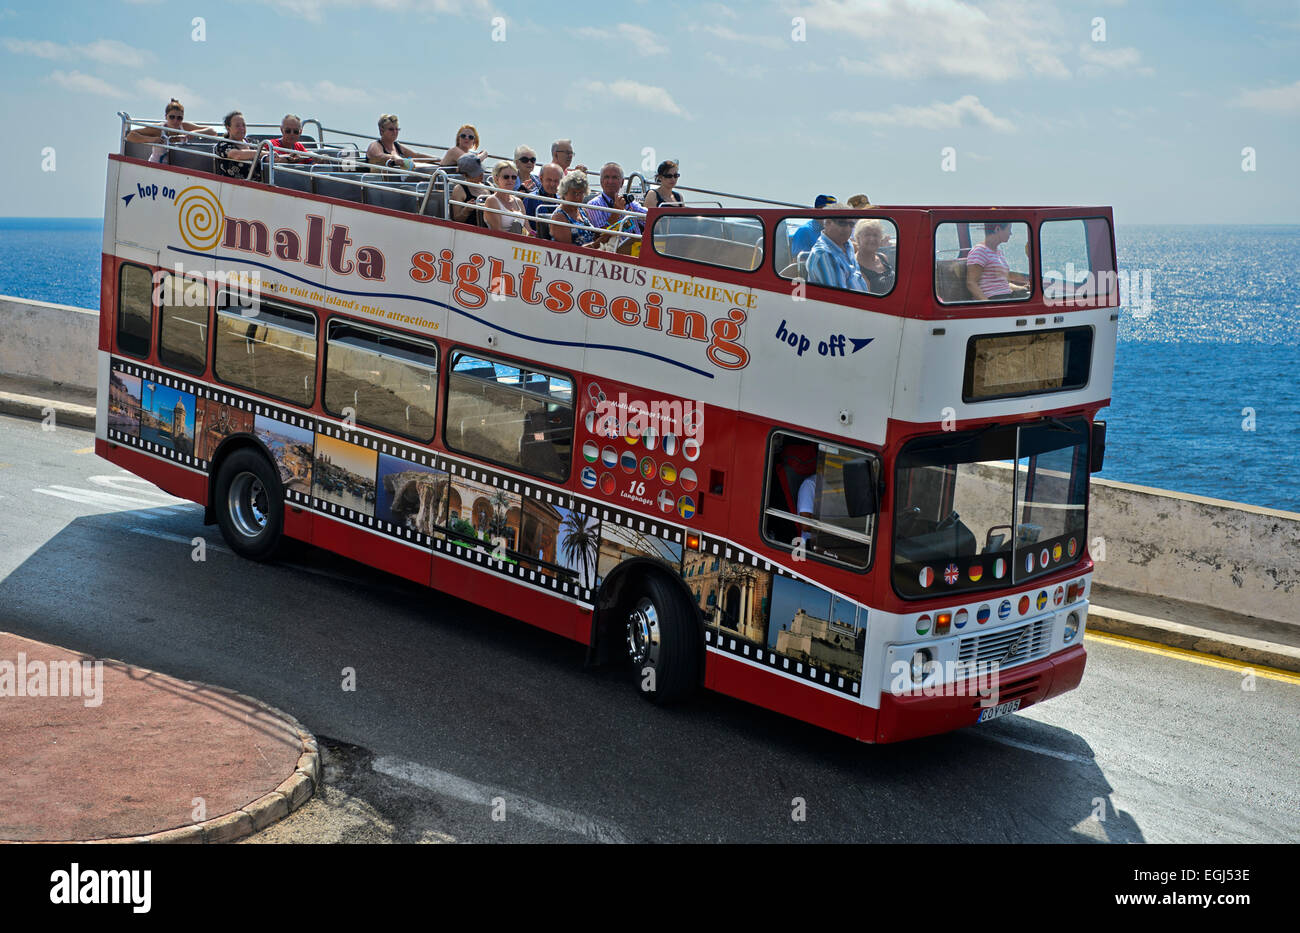 Tourists in an open-top double-decker bus on an excursion at the coast, Malta - Stock Image